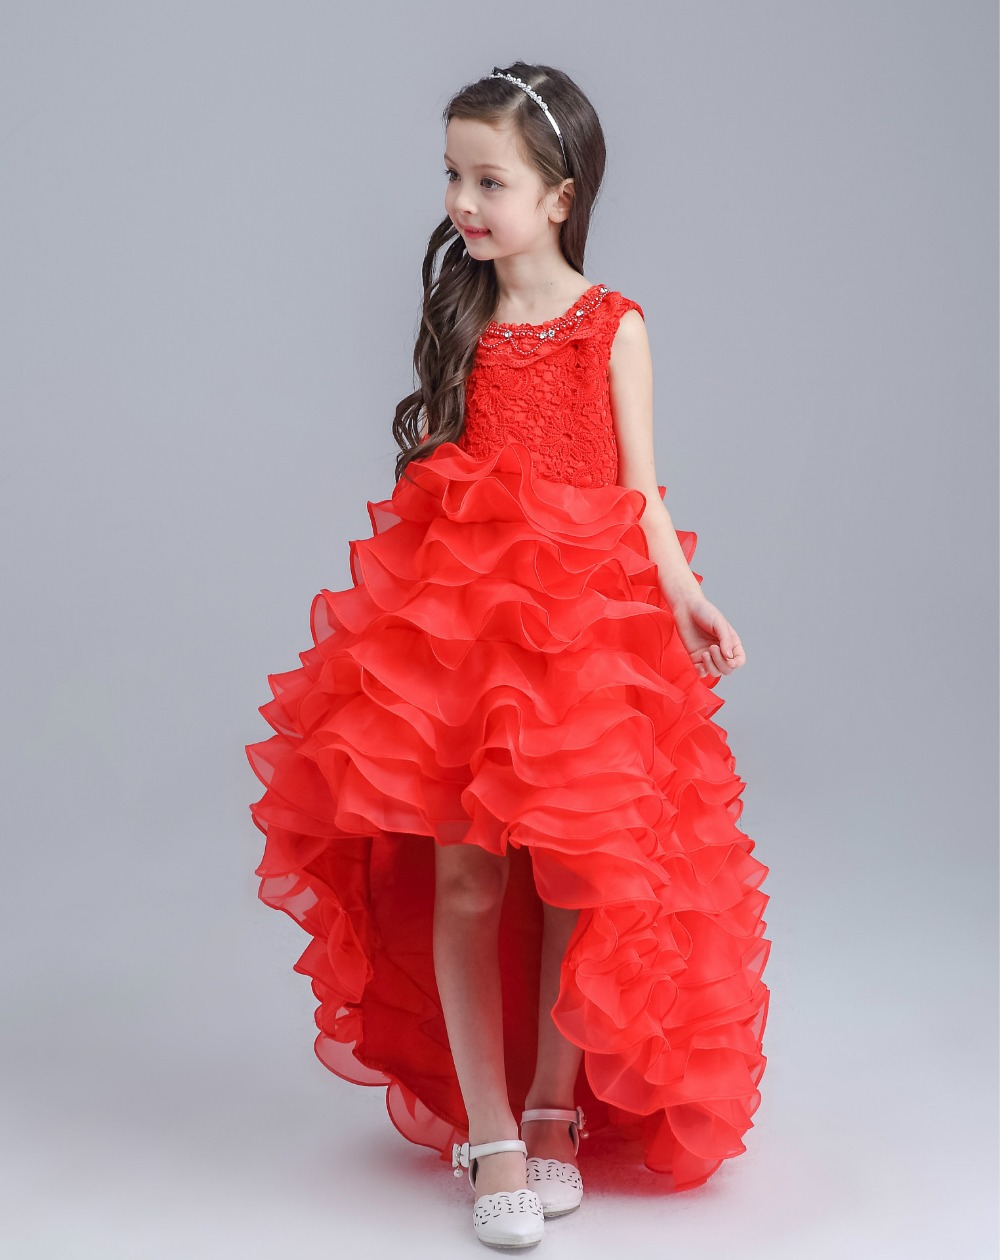 Free Shipping Retail Girl Dresses Children Dress Party Princess Baby Girl Wedding Dress Birthday Christmas 2 Colors 1290 retail girls dress princess wedding dress girl party dress children s clothes 8 colors girl dress free shipping p56